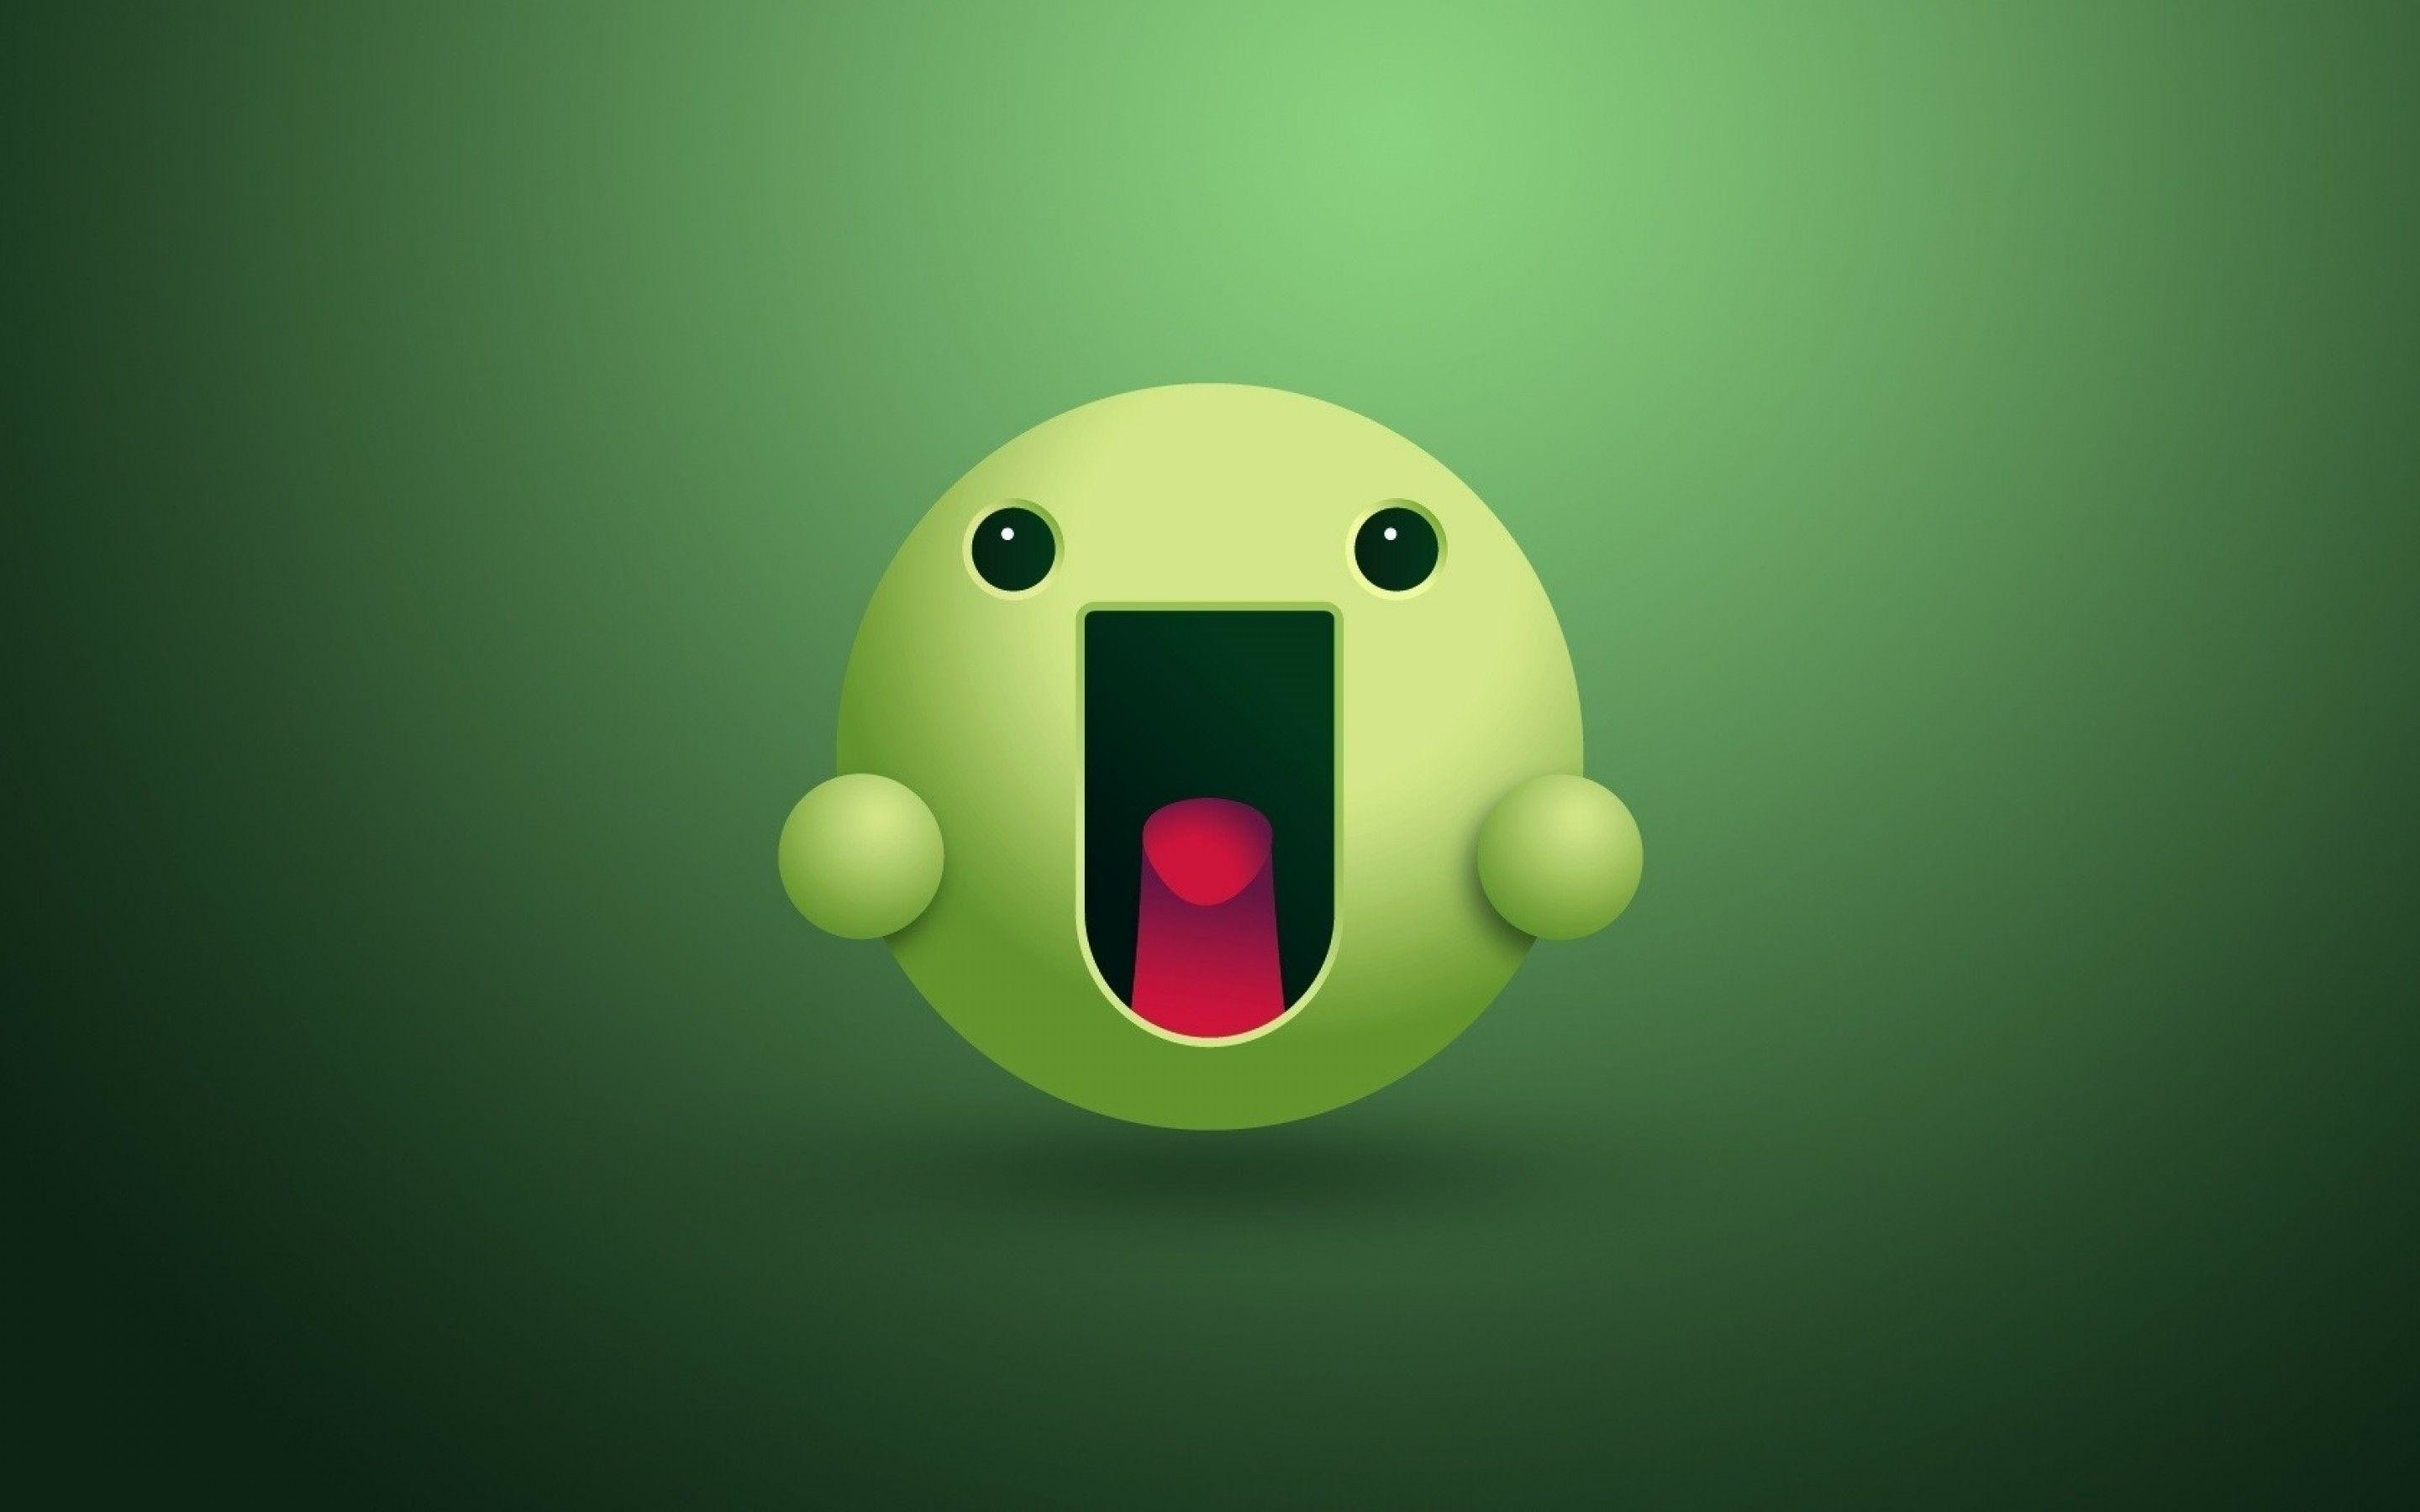 Funny faces backgrounds 49 images 2880x1800 cute funny cartoon faces wallpaper cartoon cute funny voltagebd Choice Image